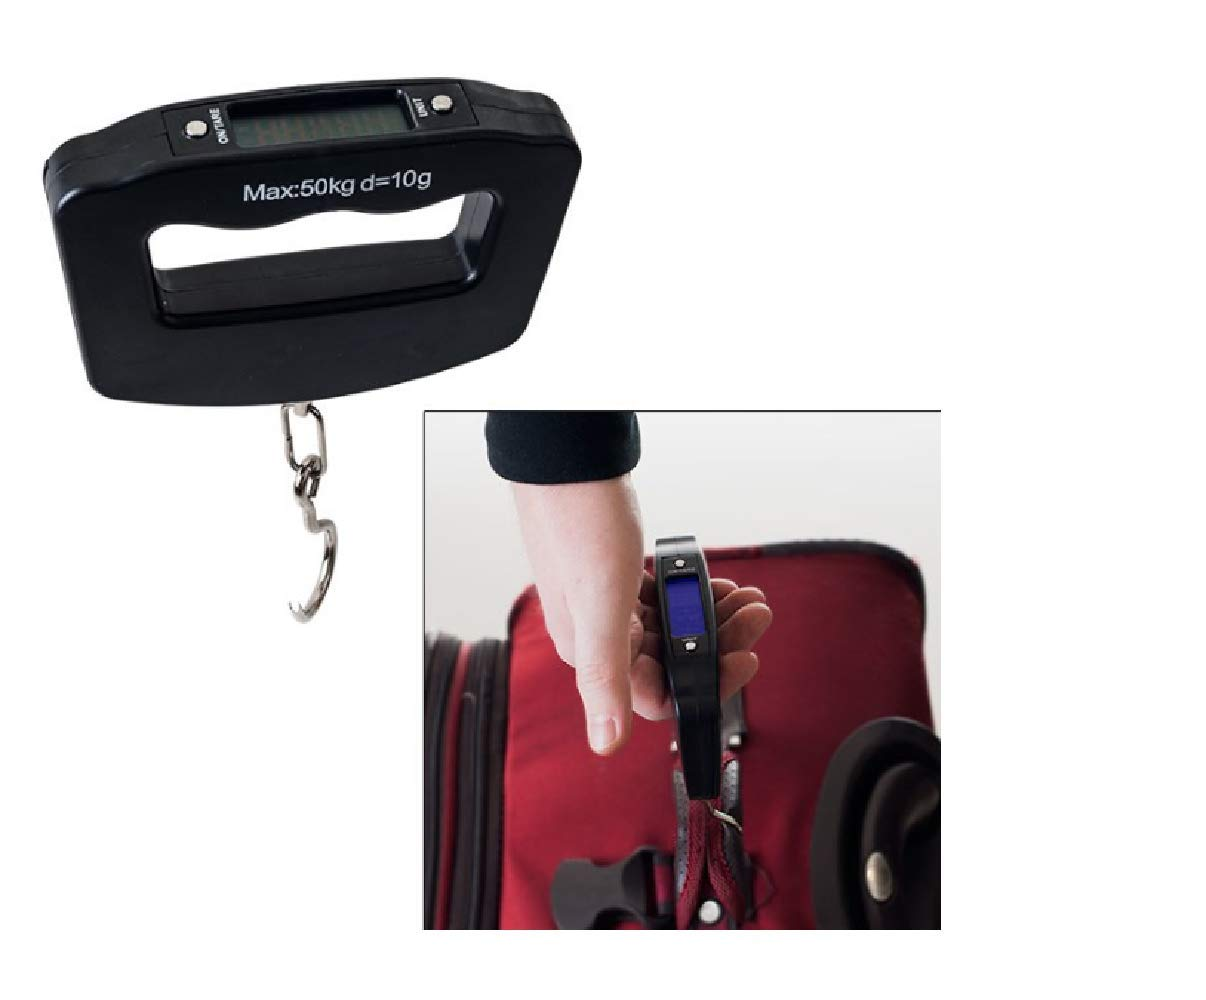 Amazon.com | Digital Luggage Grip Scale - Up to 110 Pounds | Luggage Scales